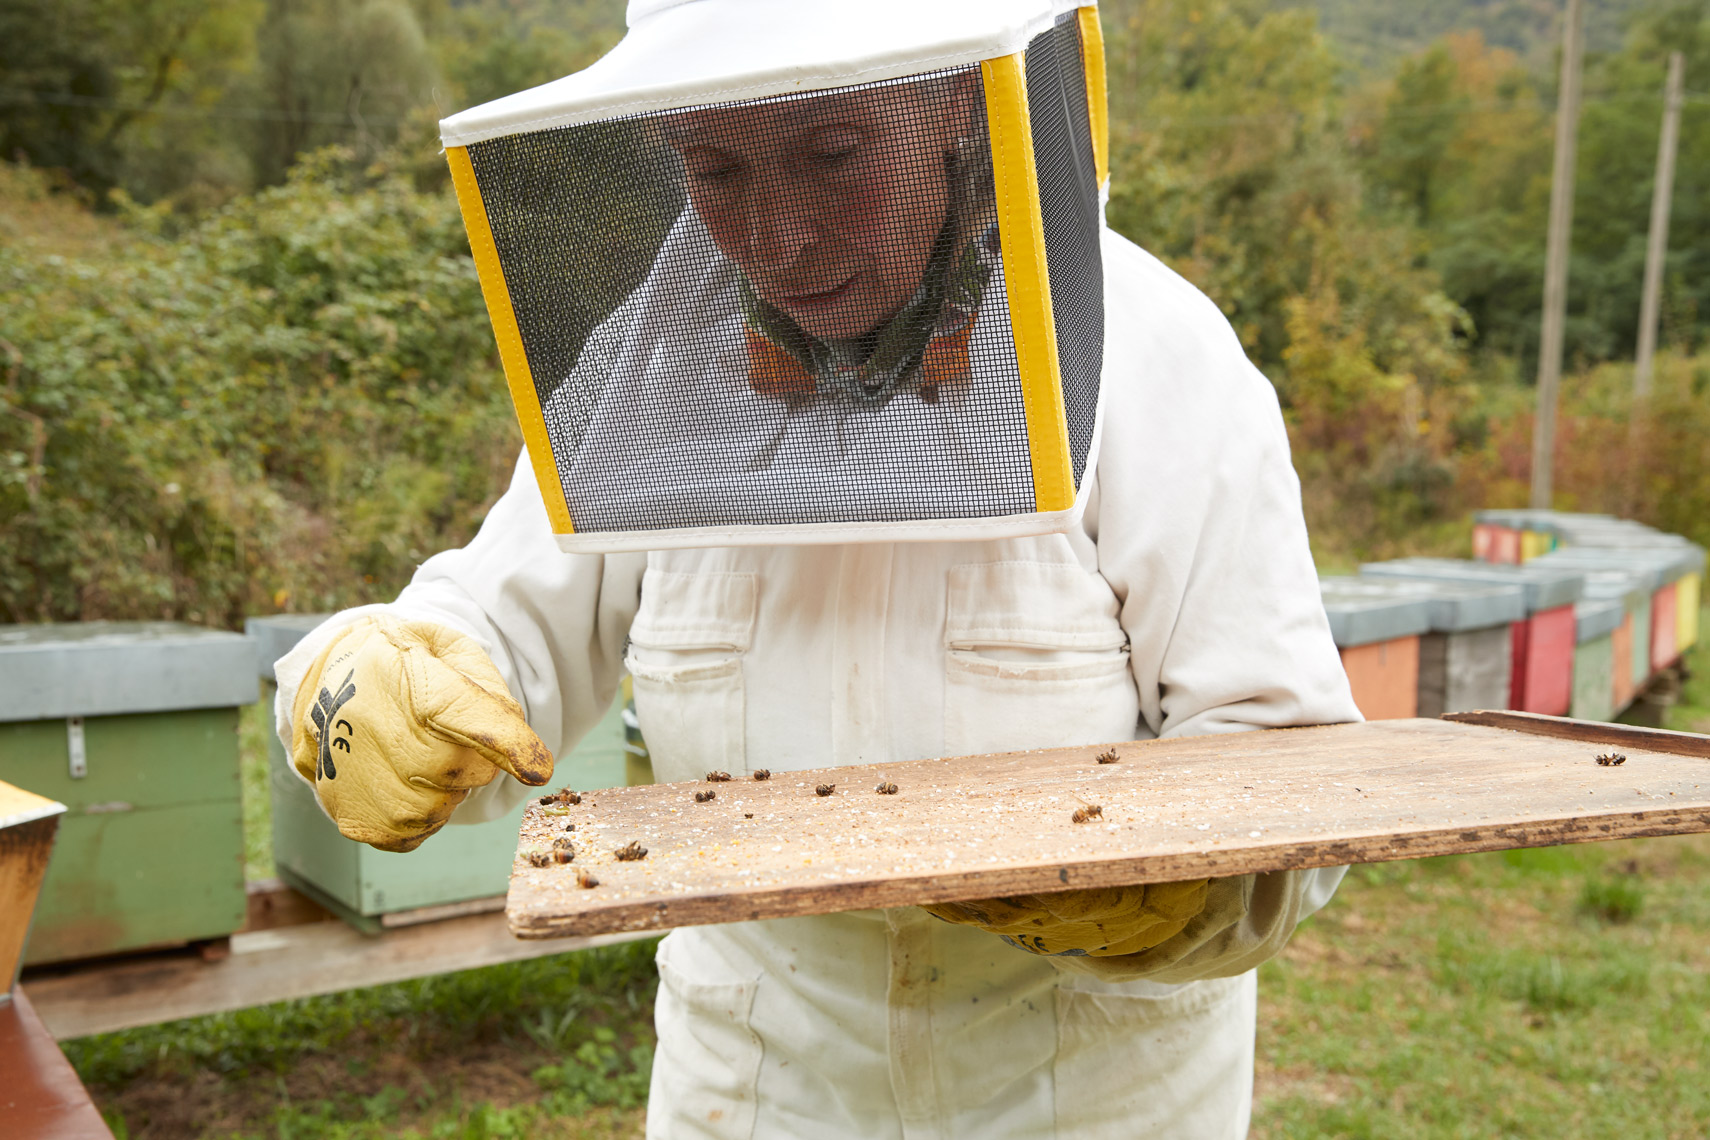 Autentico: Franca, The Bee Whisperer